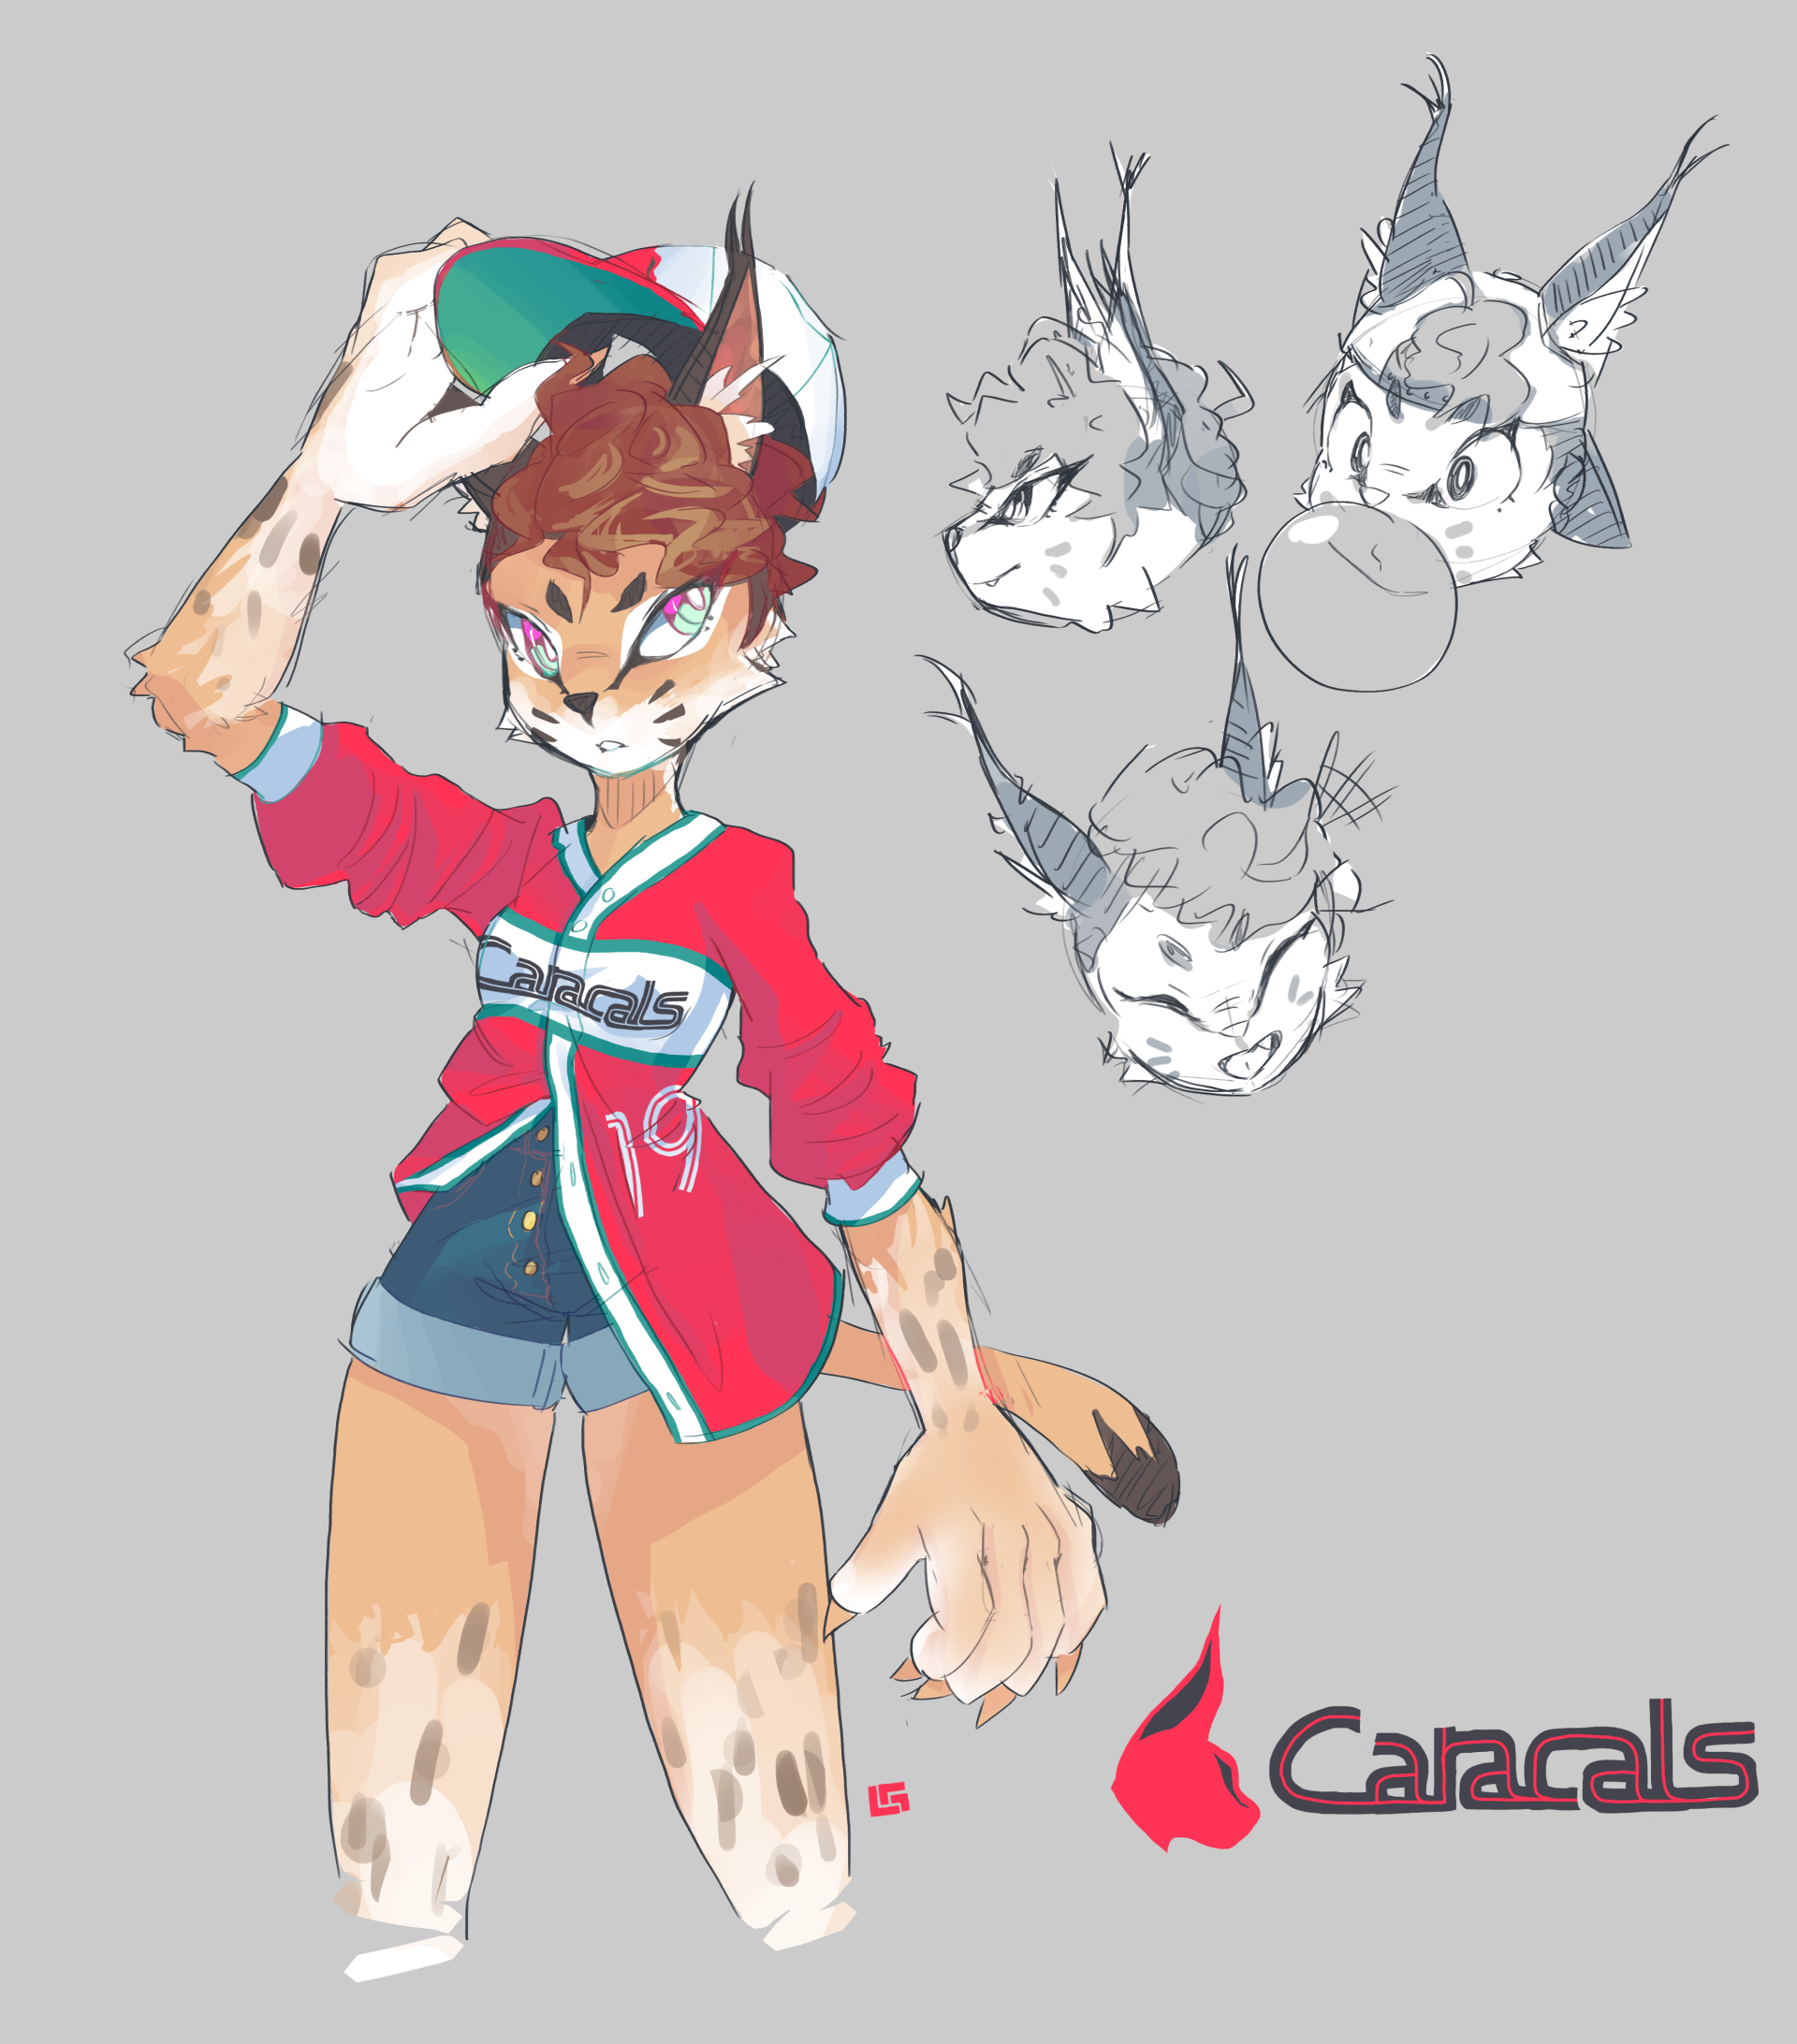 [COMMISSION] The Caracals 2